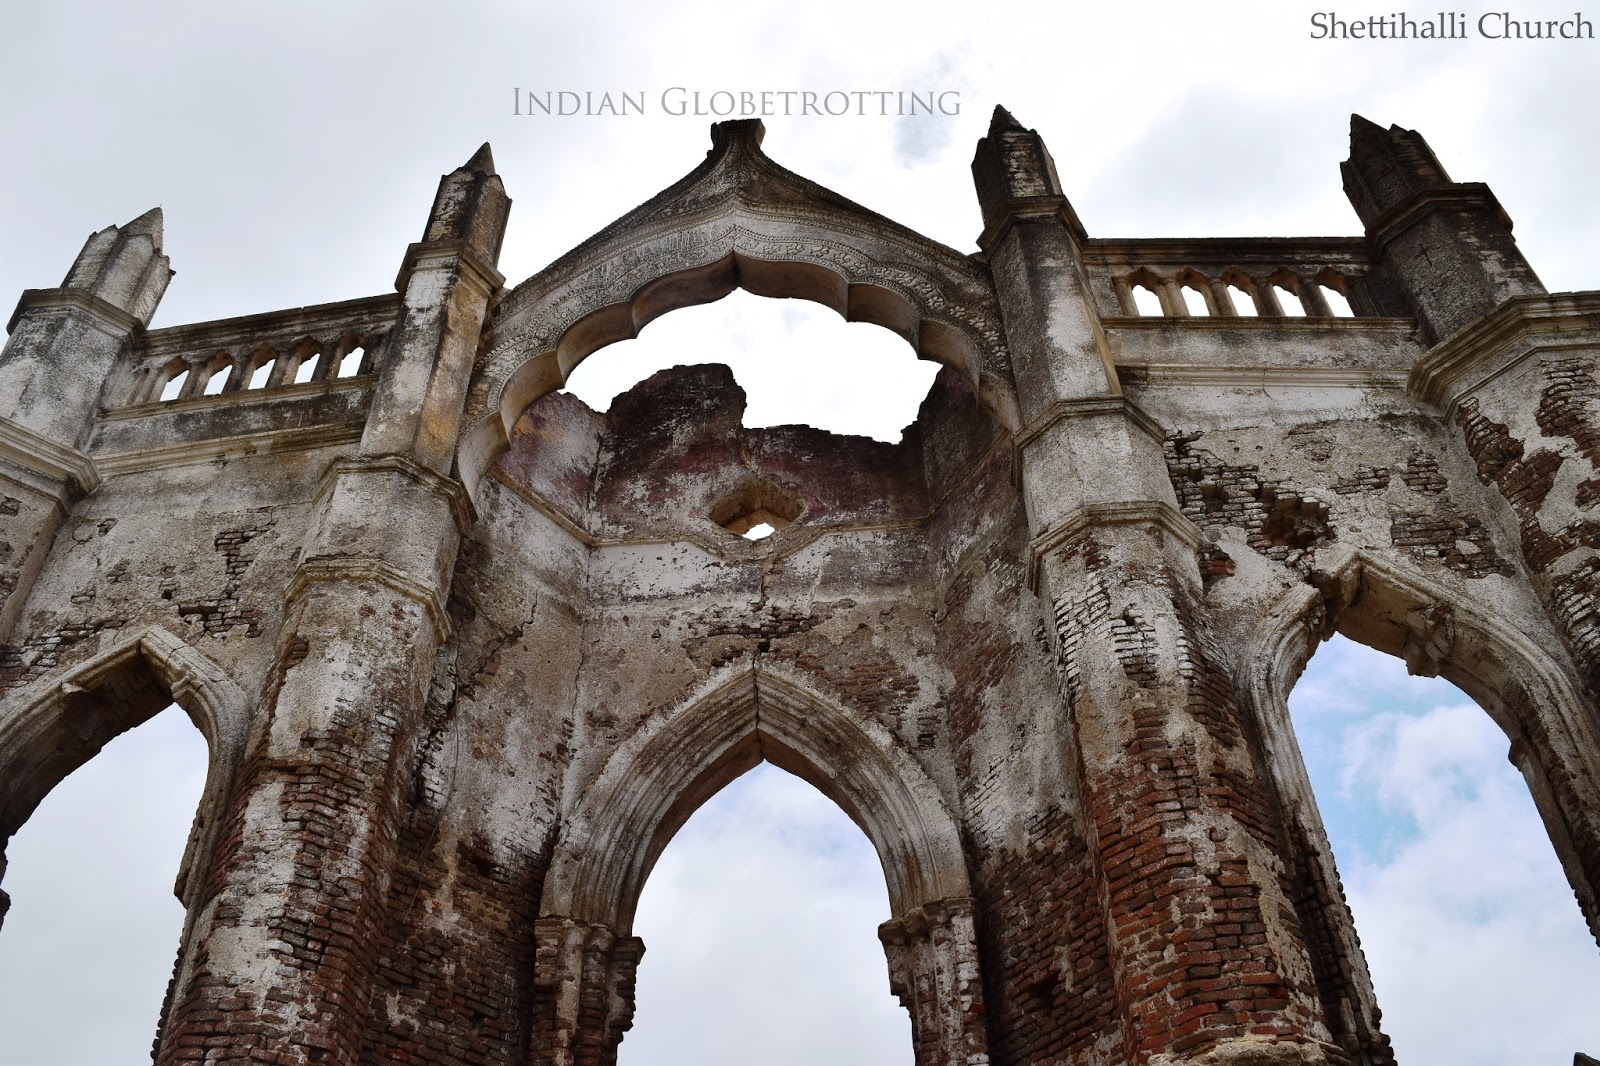 Arches of Shettihalli Church built in Gothic Style